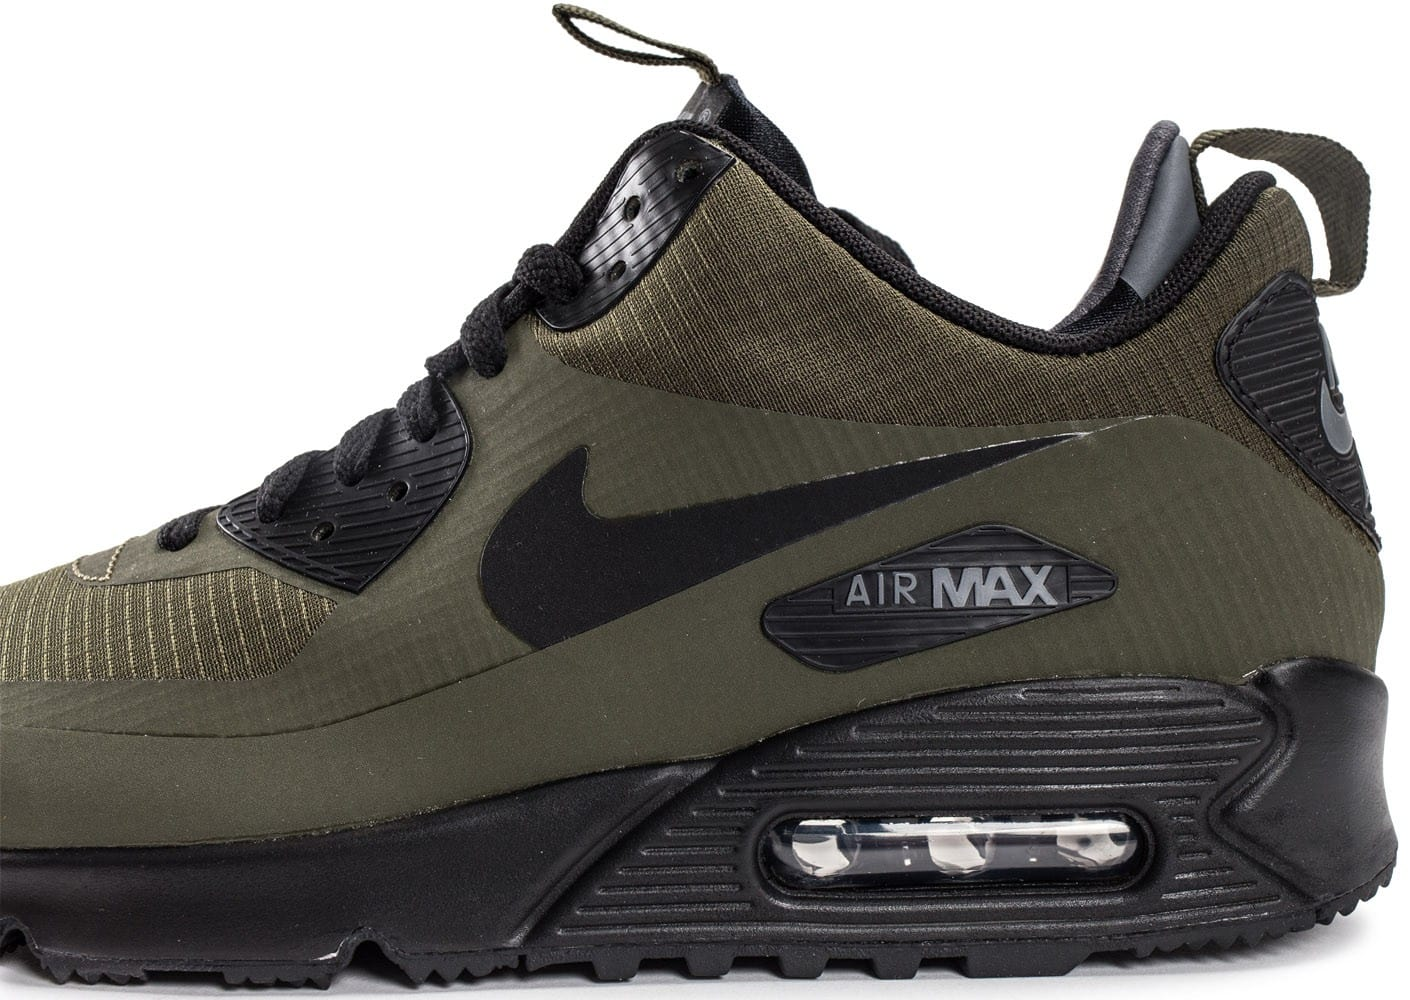 90 Homme Chausport Air Chaussures Max Winter Nike Green Baskets Mid b7gy6f